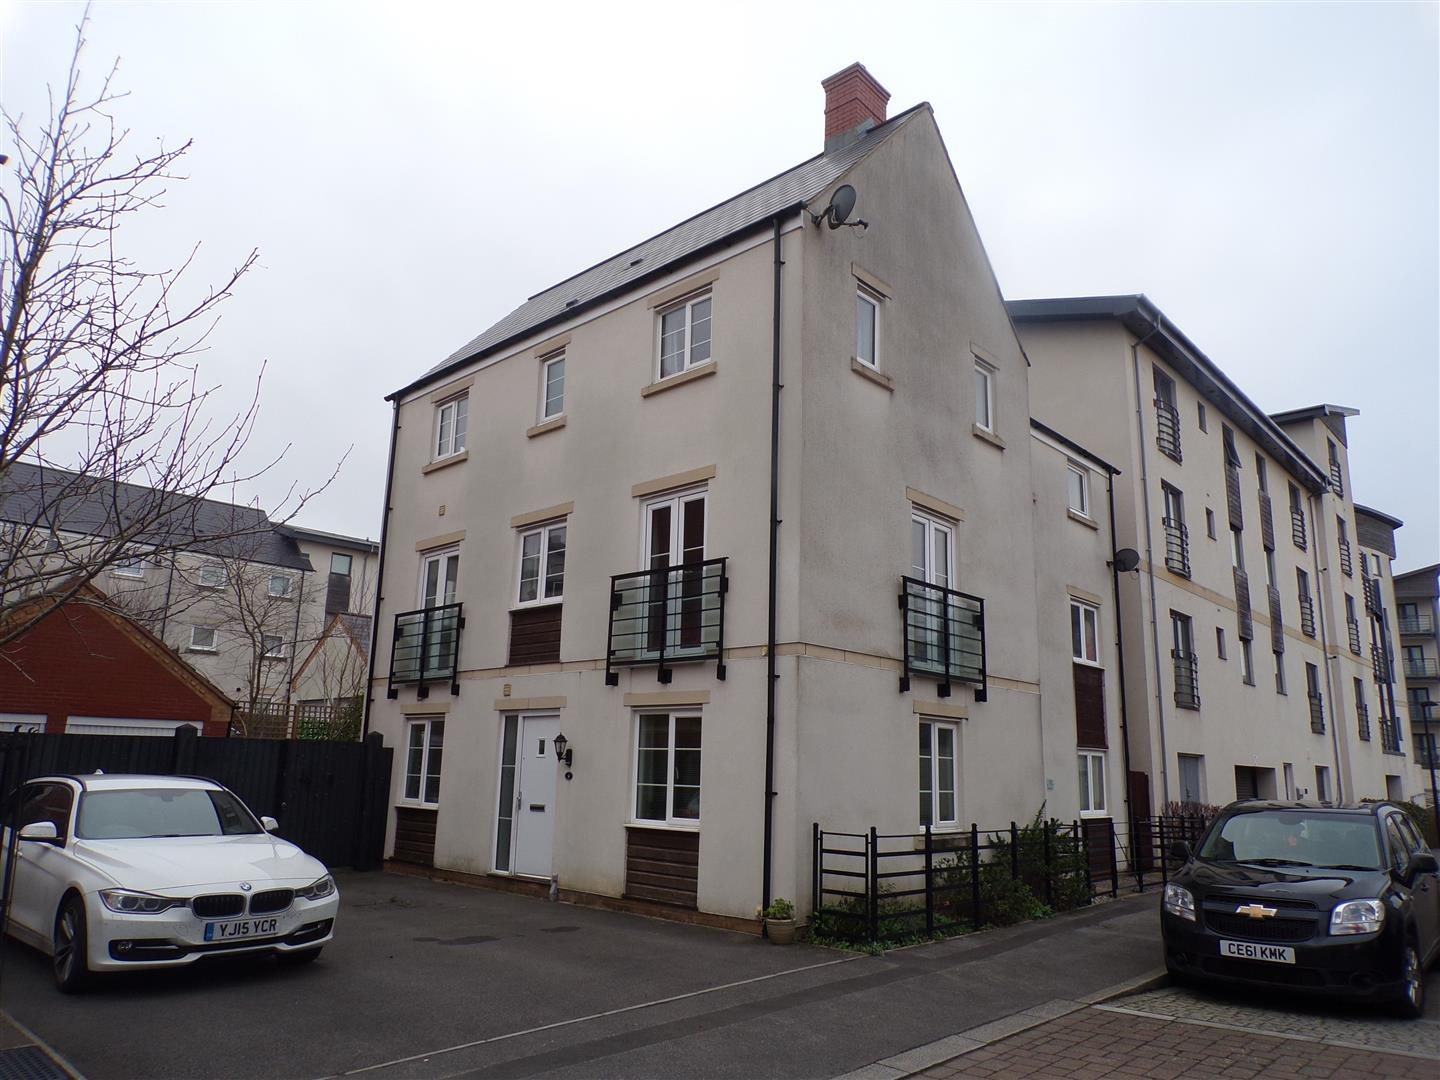 4 Bedrooms Town House for sale in Seacole Crescent, Old Town, Swindon